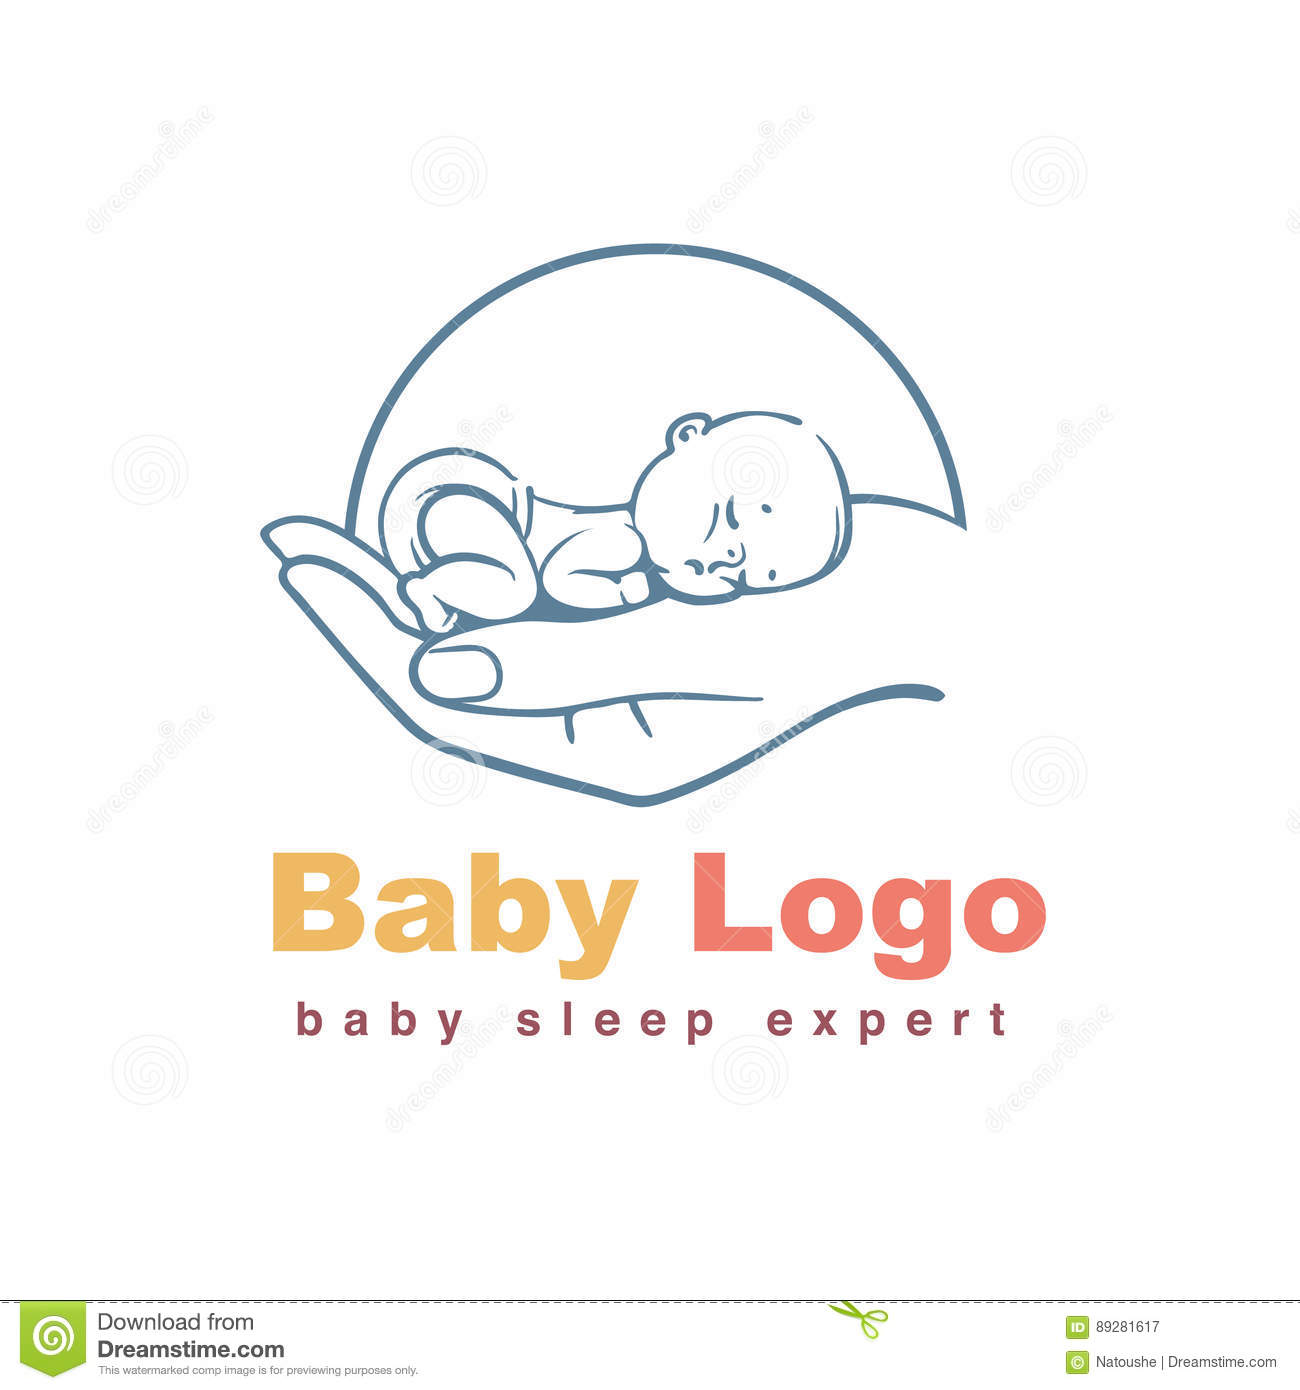 Baby Gift Logo : Childbearing stock images royalty free pretty